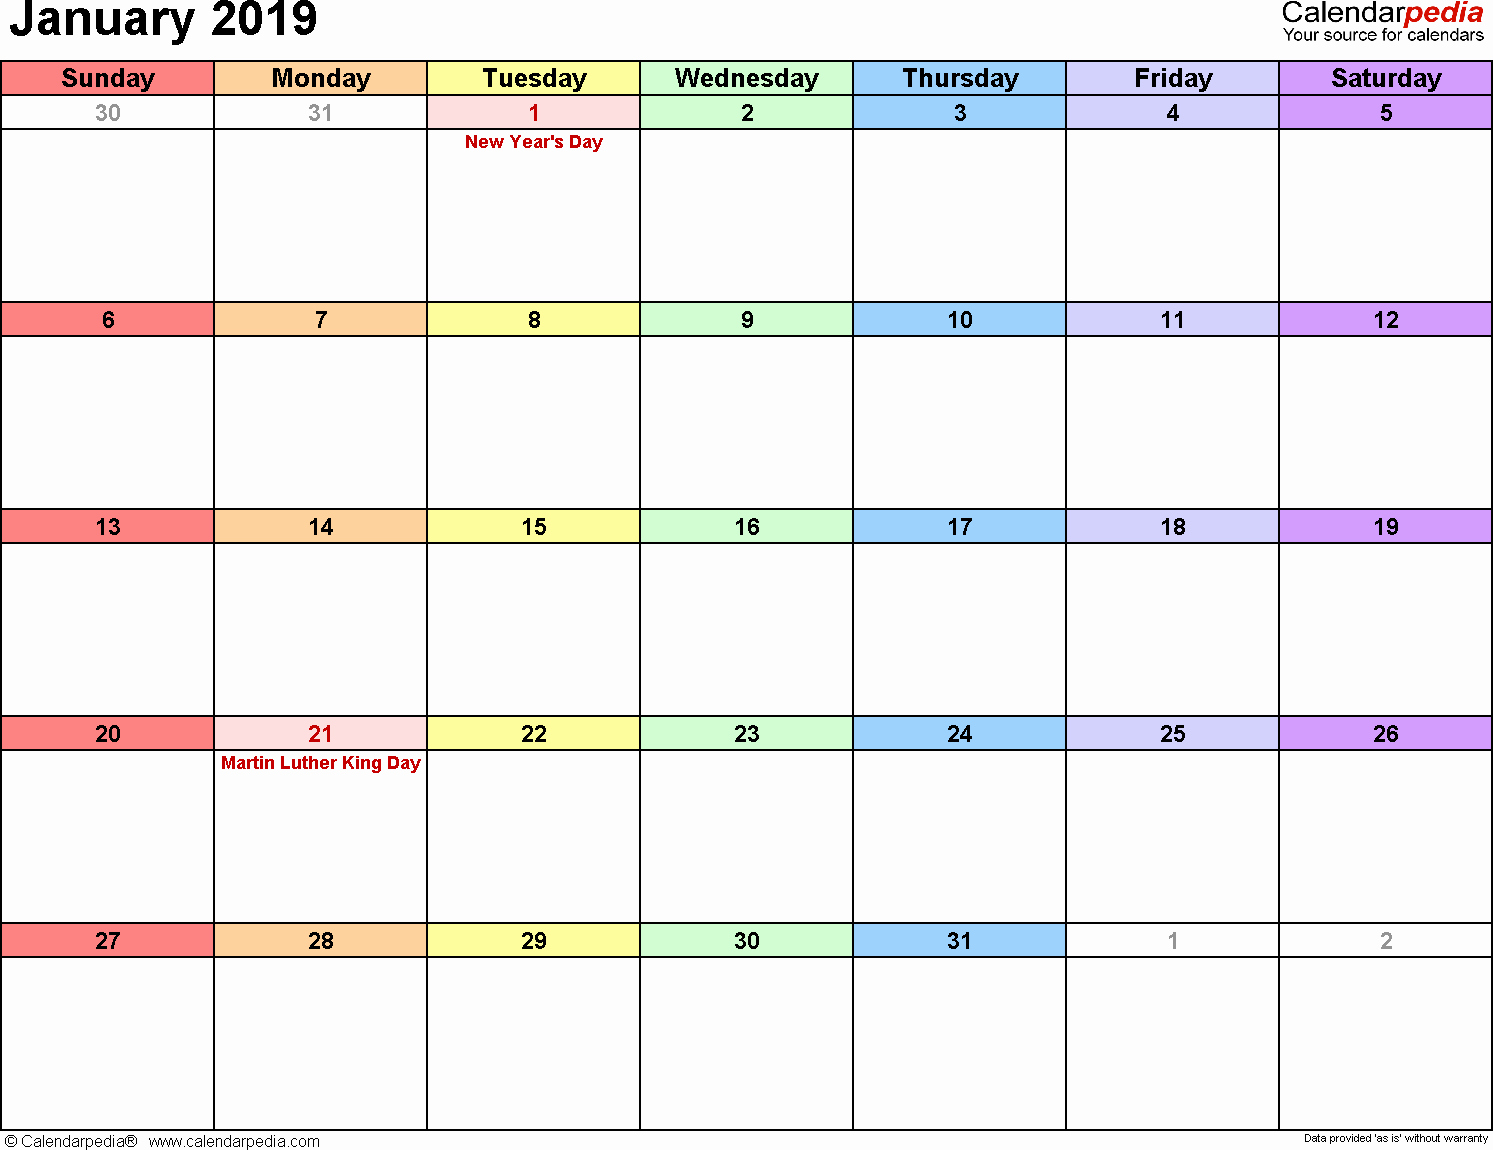 Blank January 2019 Calendar Template Best Of January 2019 Calendars for Word Excel & Pdf